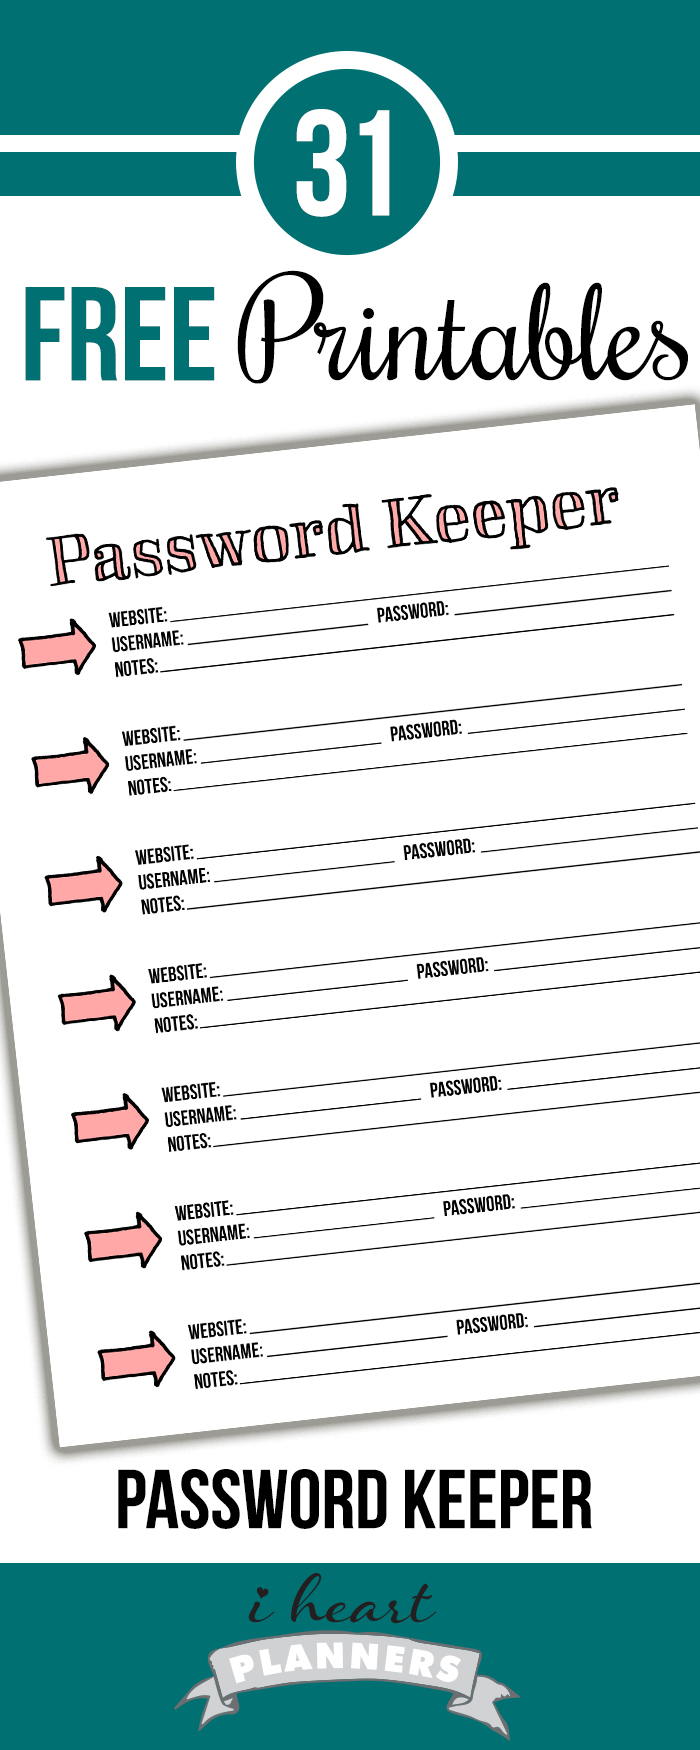 photograph regarding Printable Password Keeper known as Working day 6: Pword Keeper - I Center Planners